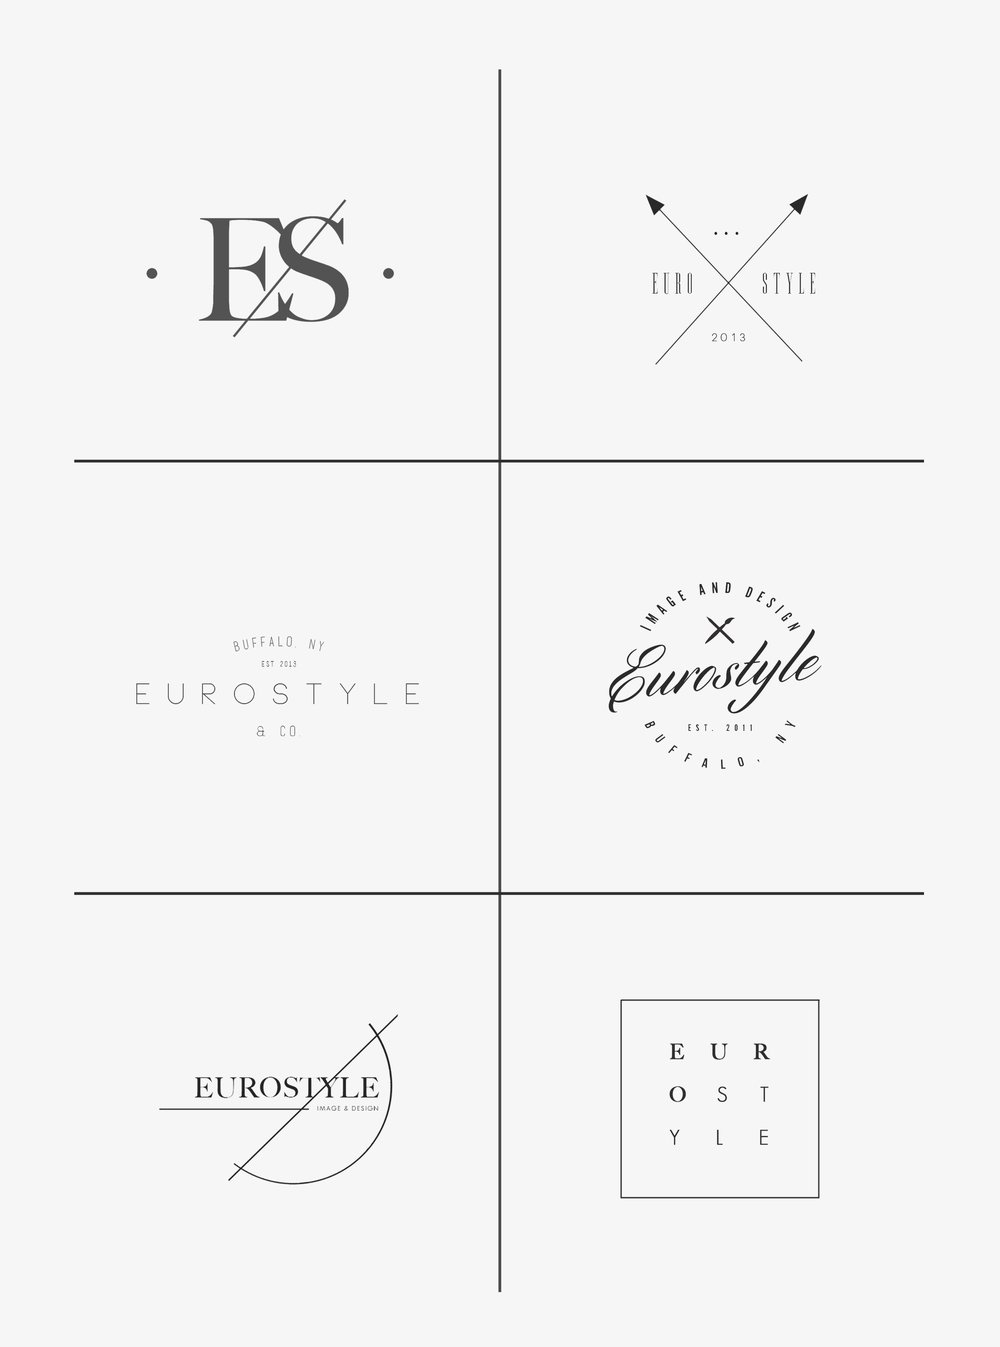 Portfolio eurostyle apparel logo christina laing they were looking for a design that had a hand drawn feel such as in old sketches and blueprints with modern elements mixed in as well fresh and clean malvernweather Choice Image